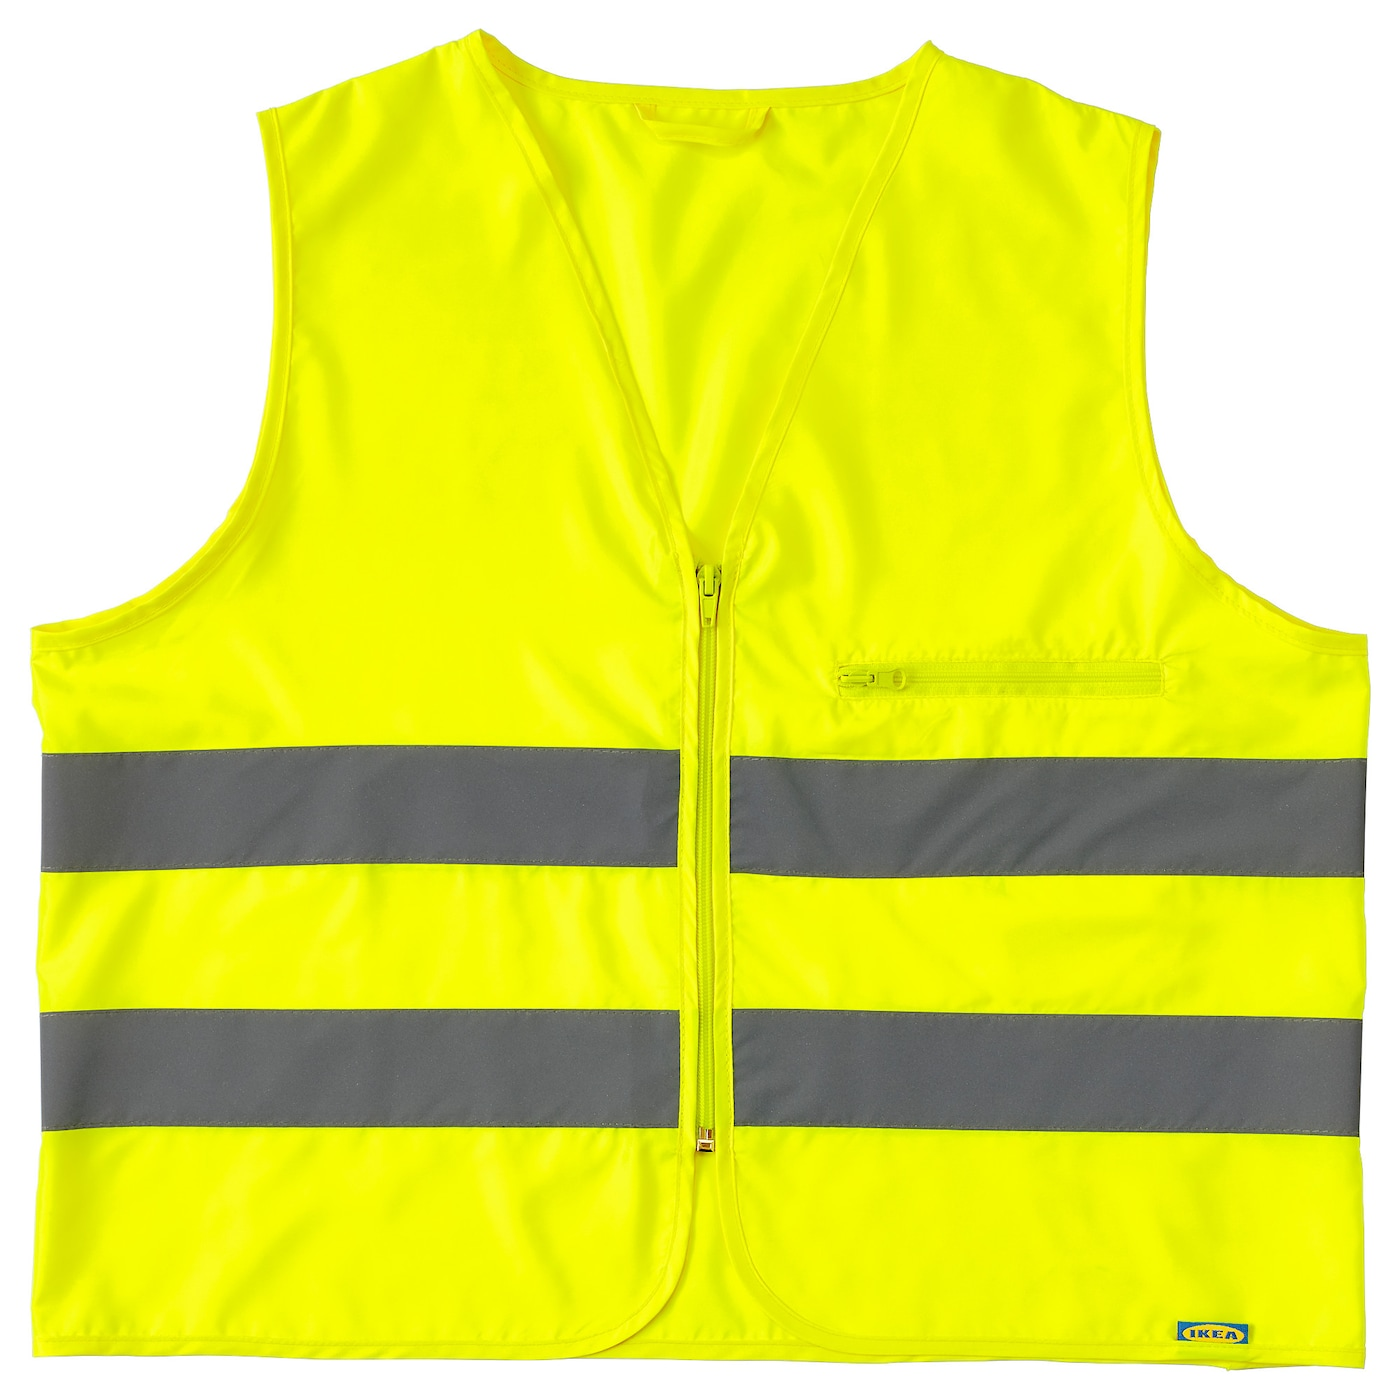 Beskydda reflective vest m yellow ikea for Ikea safety vest